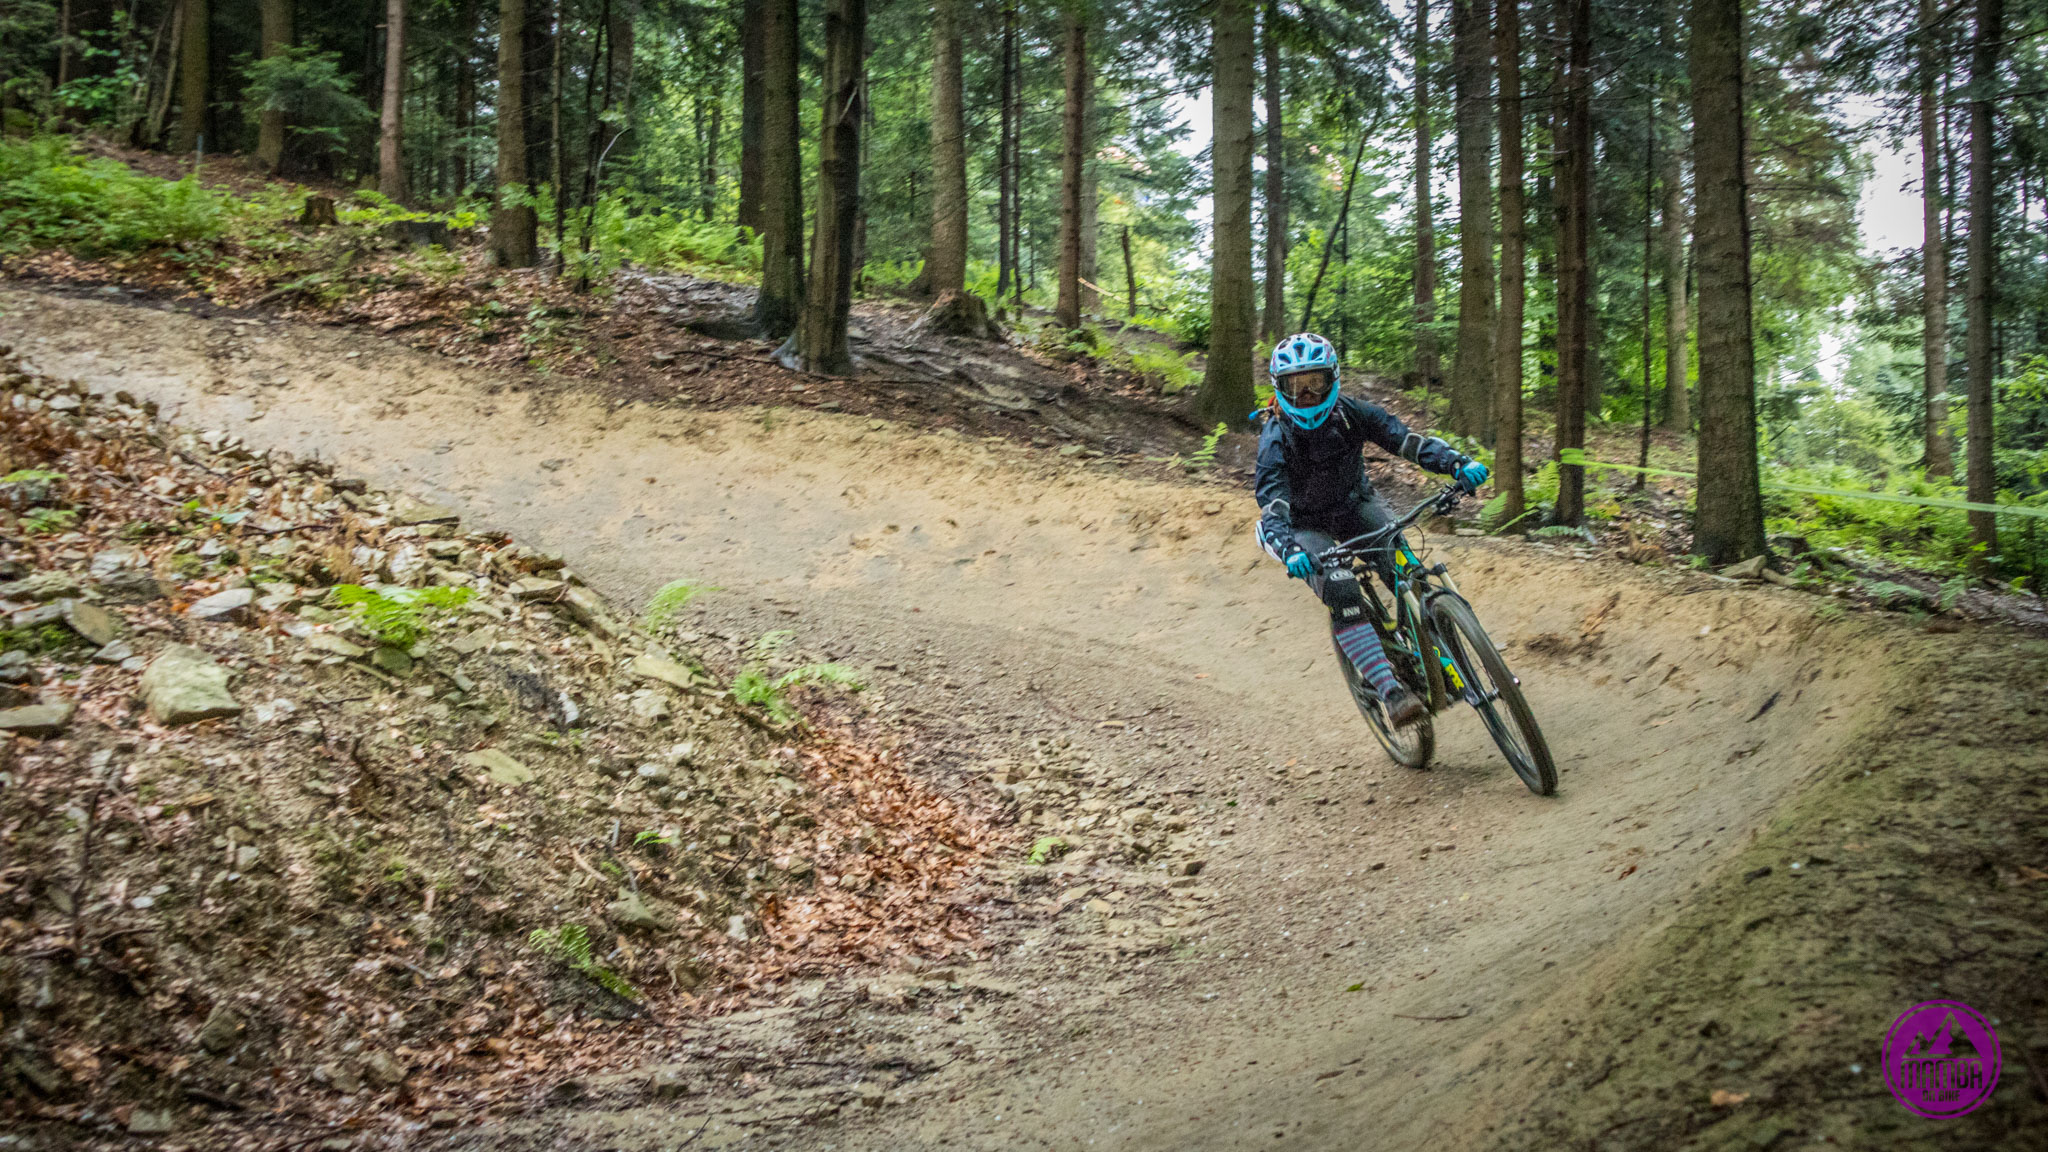 Girls Shred Kasina Wielka - Bline